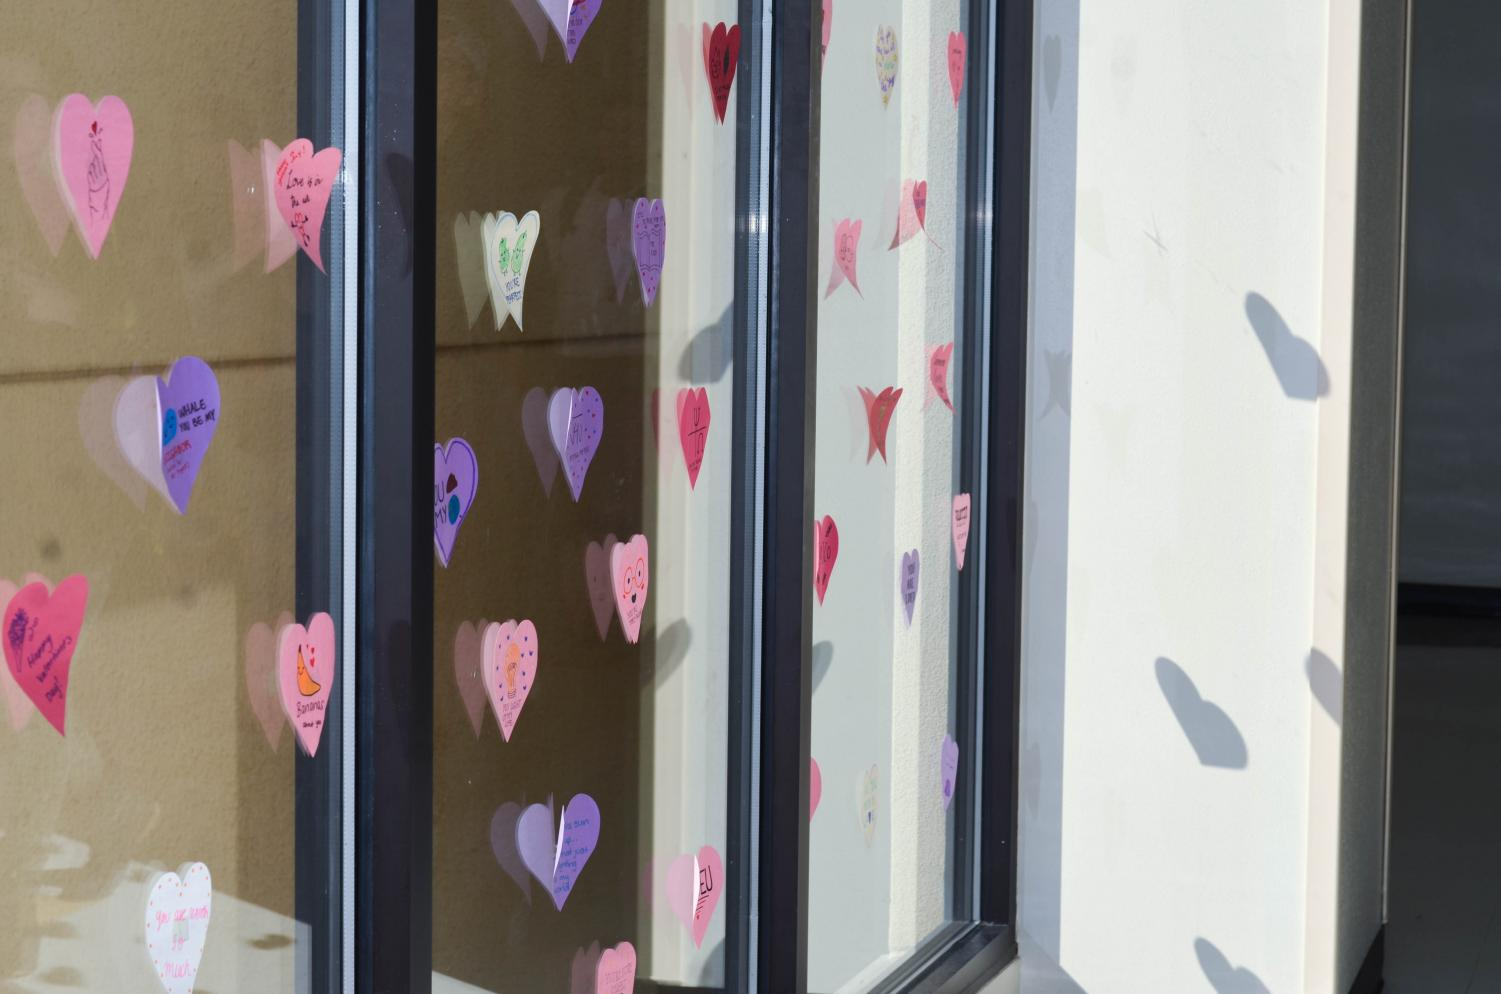 Paper+hearts+cover+the+windows+of+the+building+five+hallway.+NAHS+created+these+Valentine%E2%80%99s+after+school+Feb.+13.